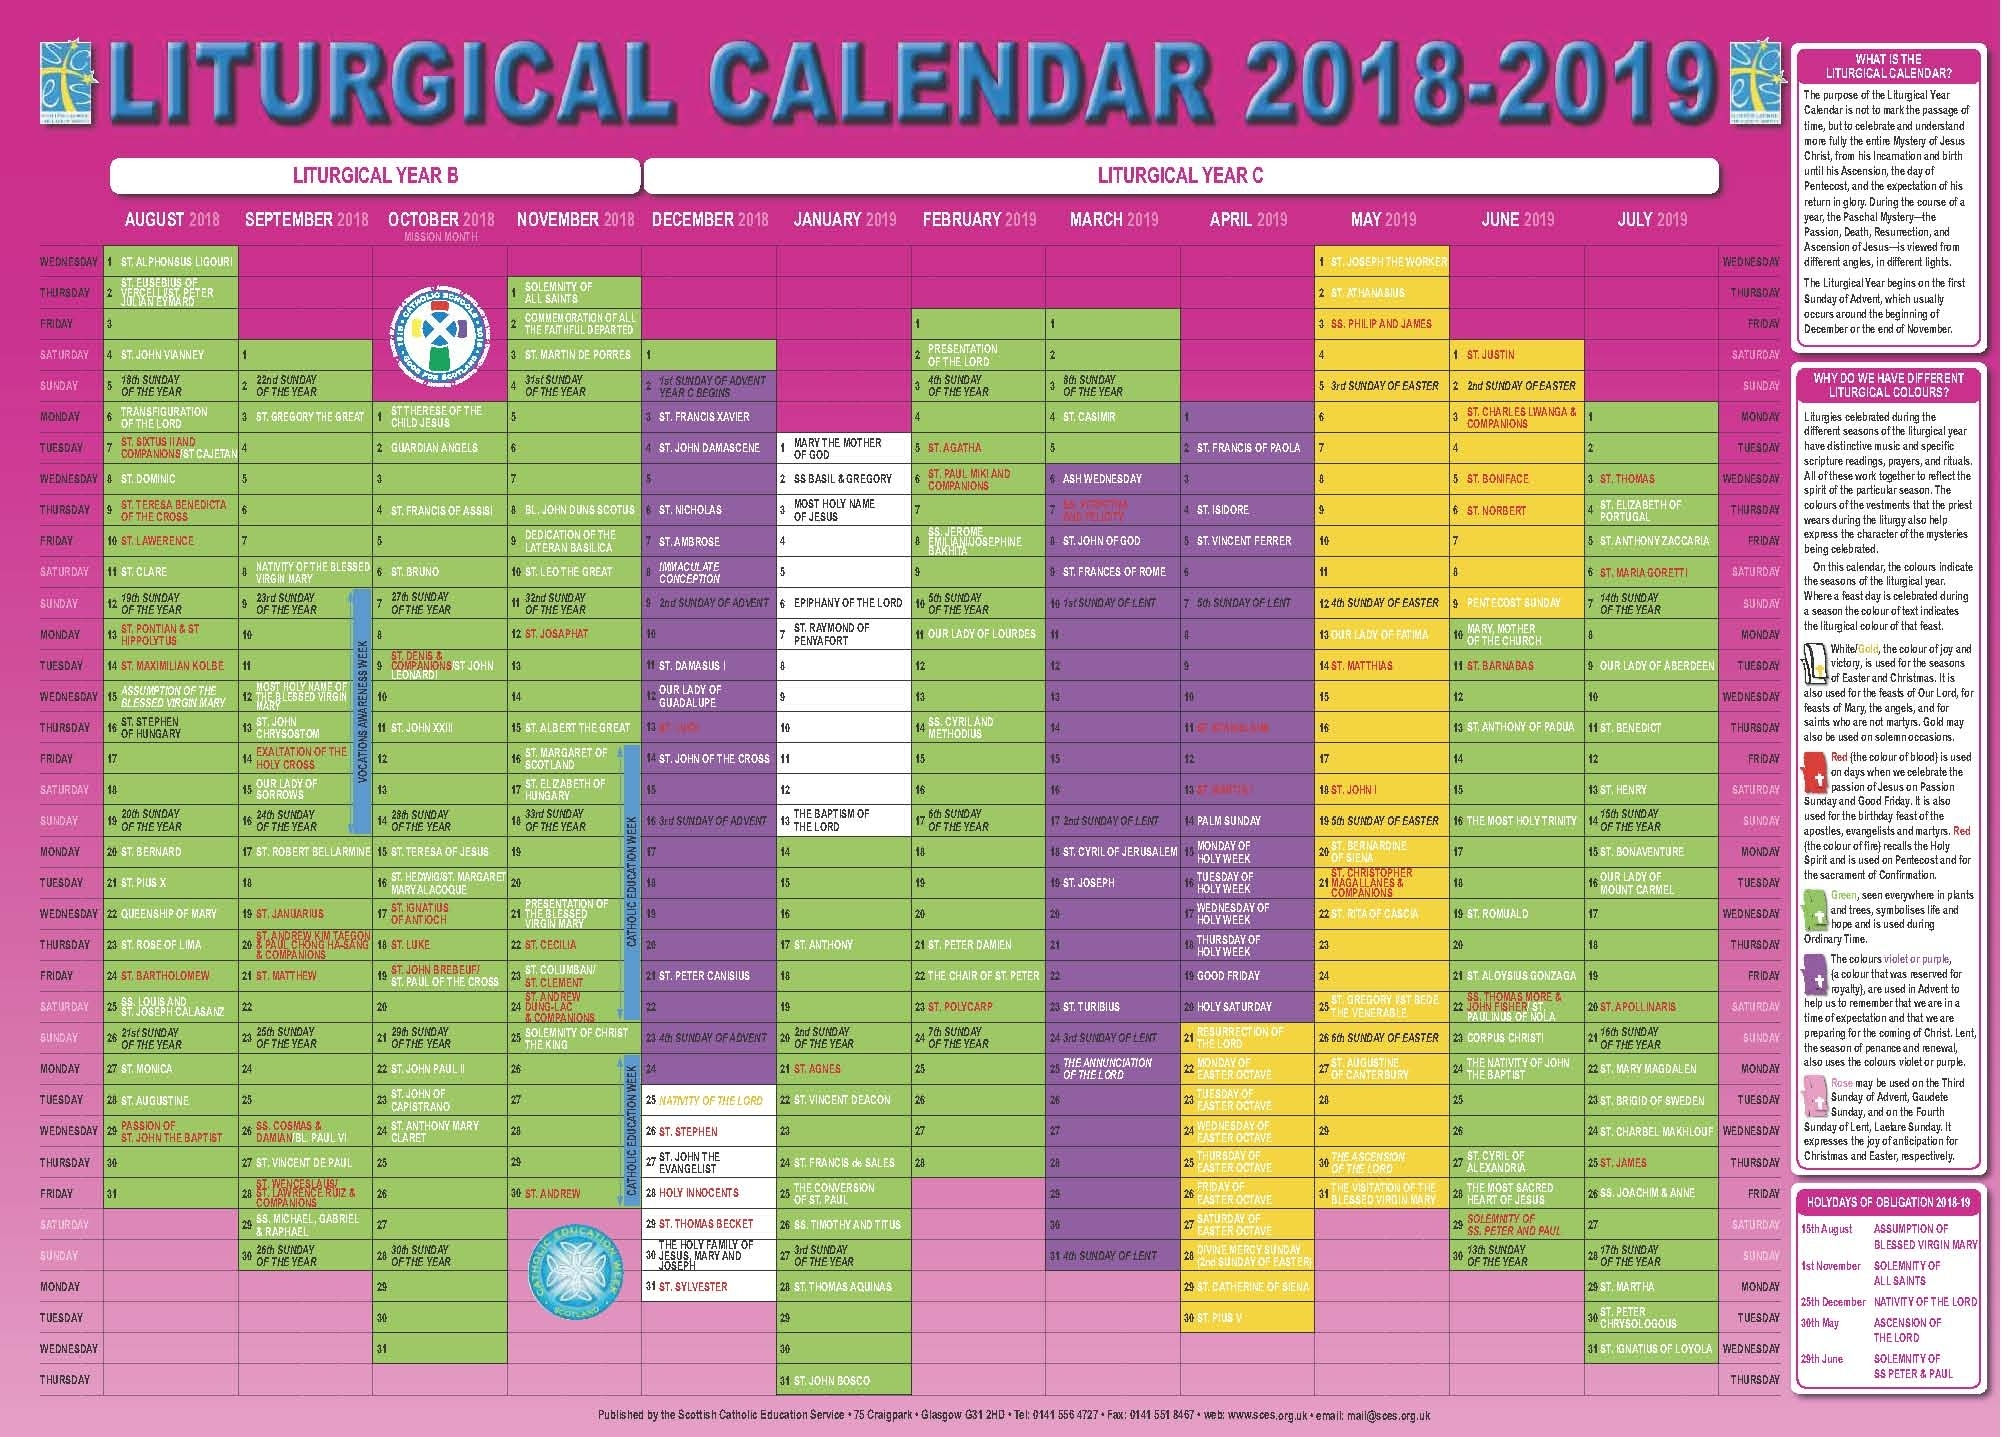 Scottish Catholic Education Service | Sces | Liturgical Calendar pertaining to Images Of Catholoic Liturgical Calendar